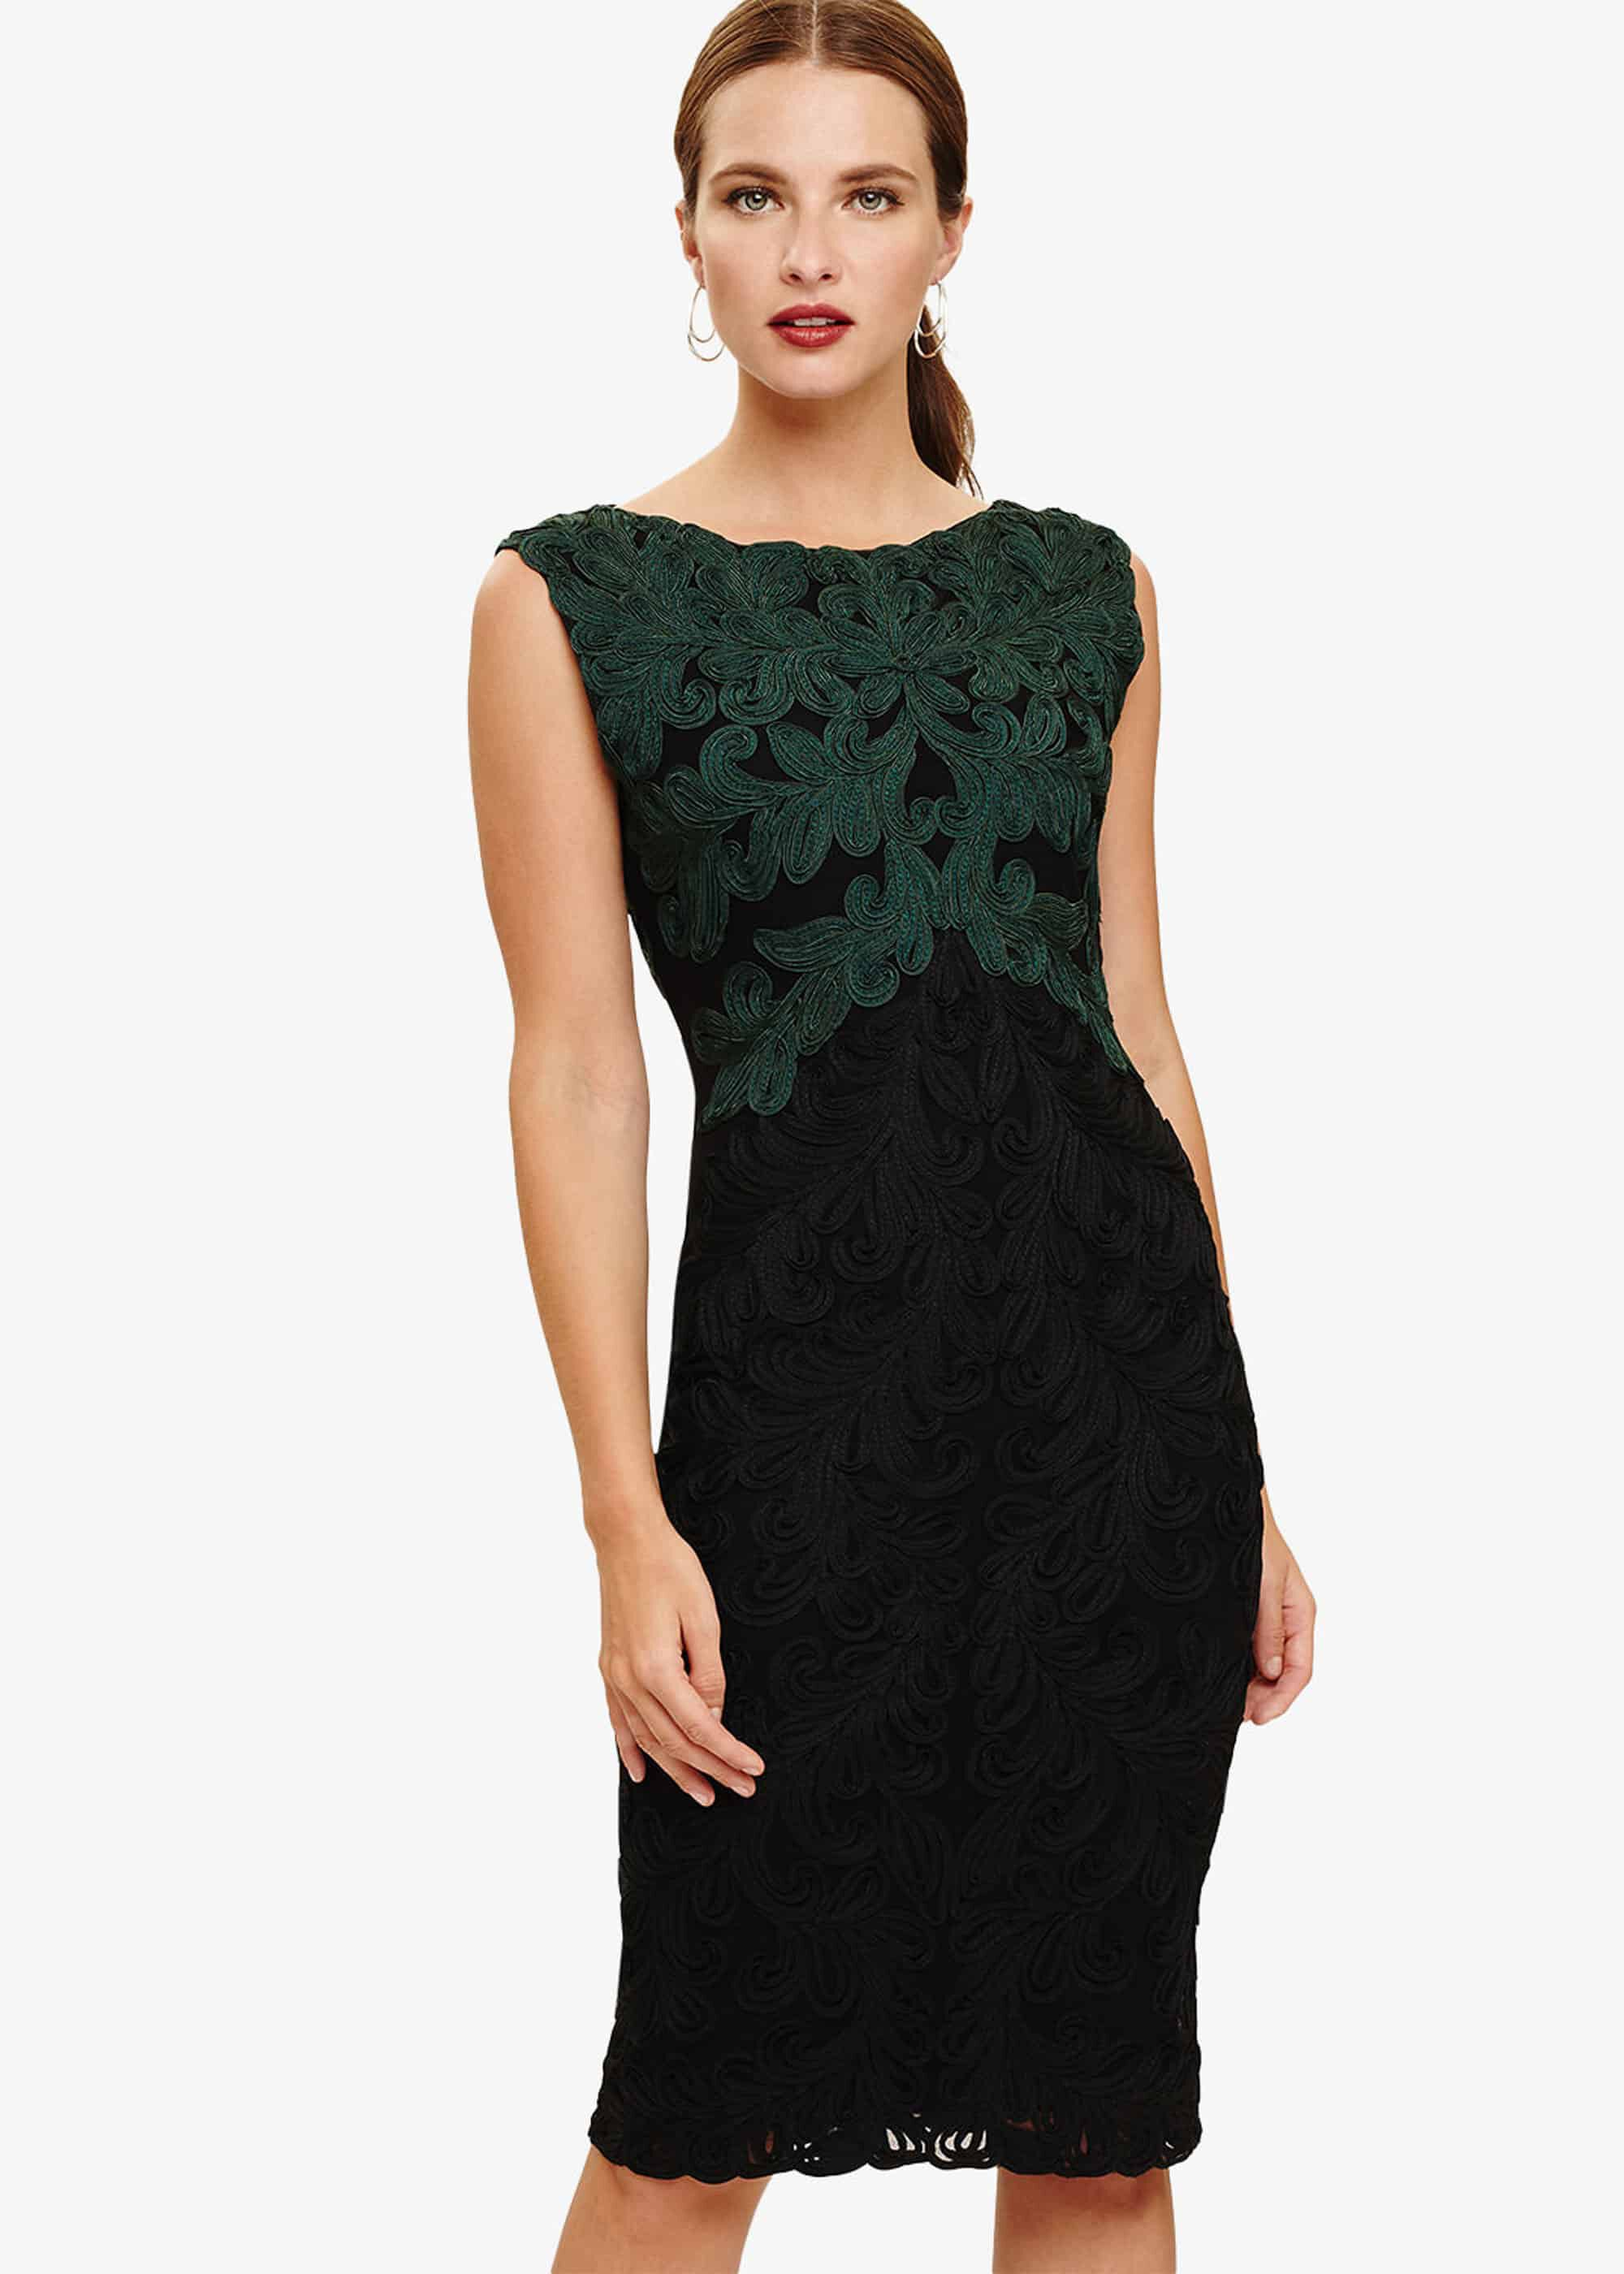 a86efea8d5 Winter Wedding Outfits 2019 Mother of the Bride & Groom Occasionwear